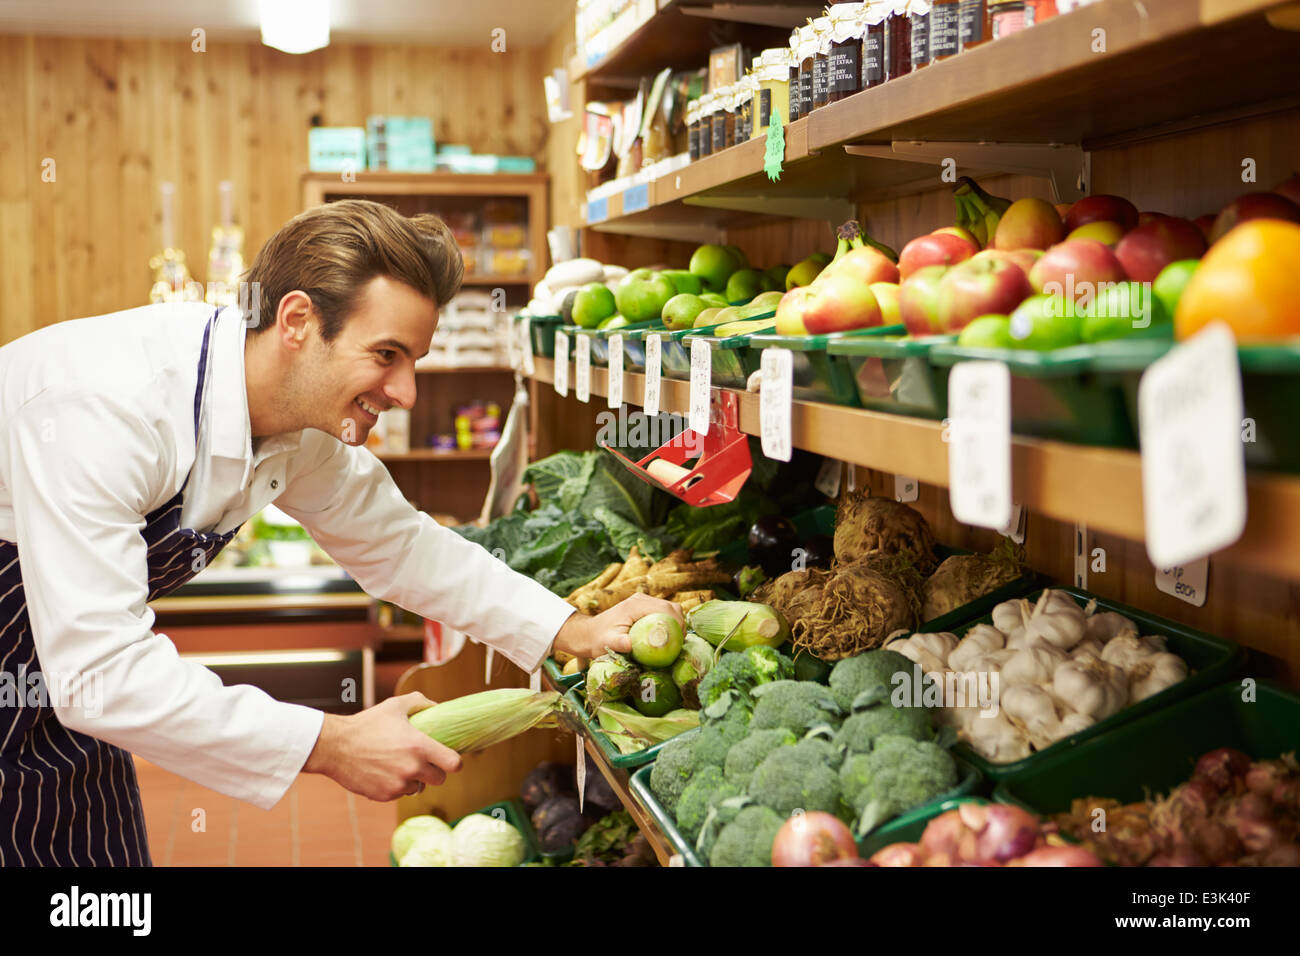 Male Sales Assistant At Vegetable Counter Of Farm Shop - Stock Image